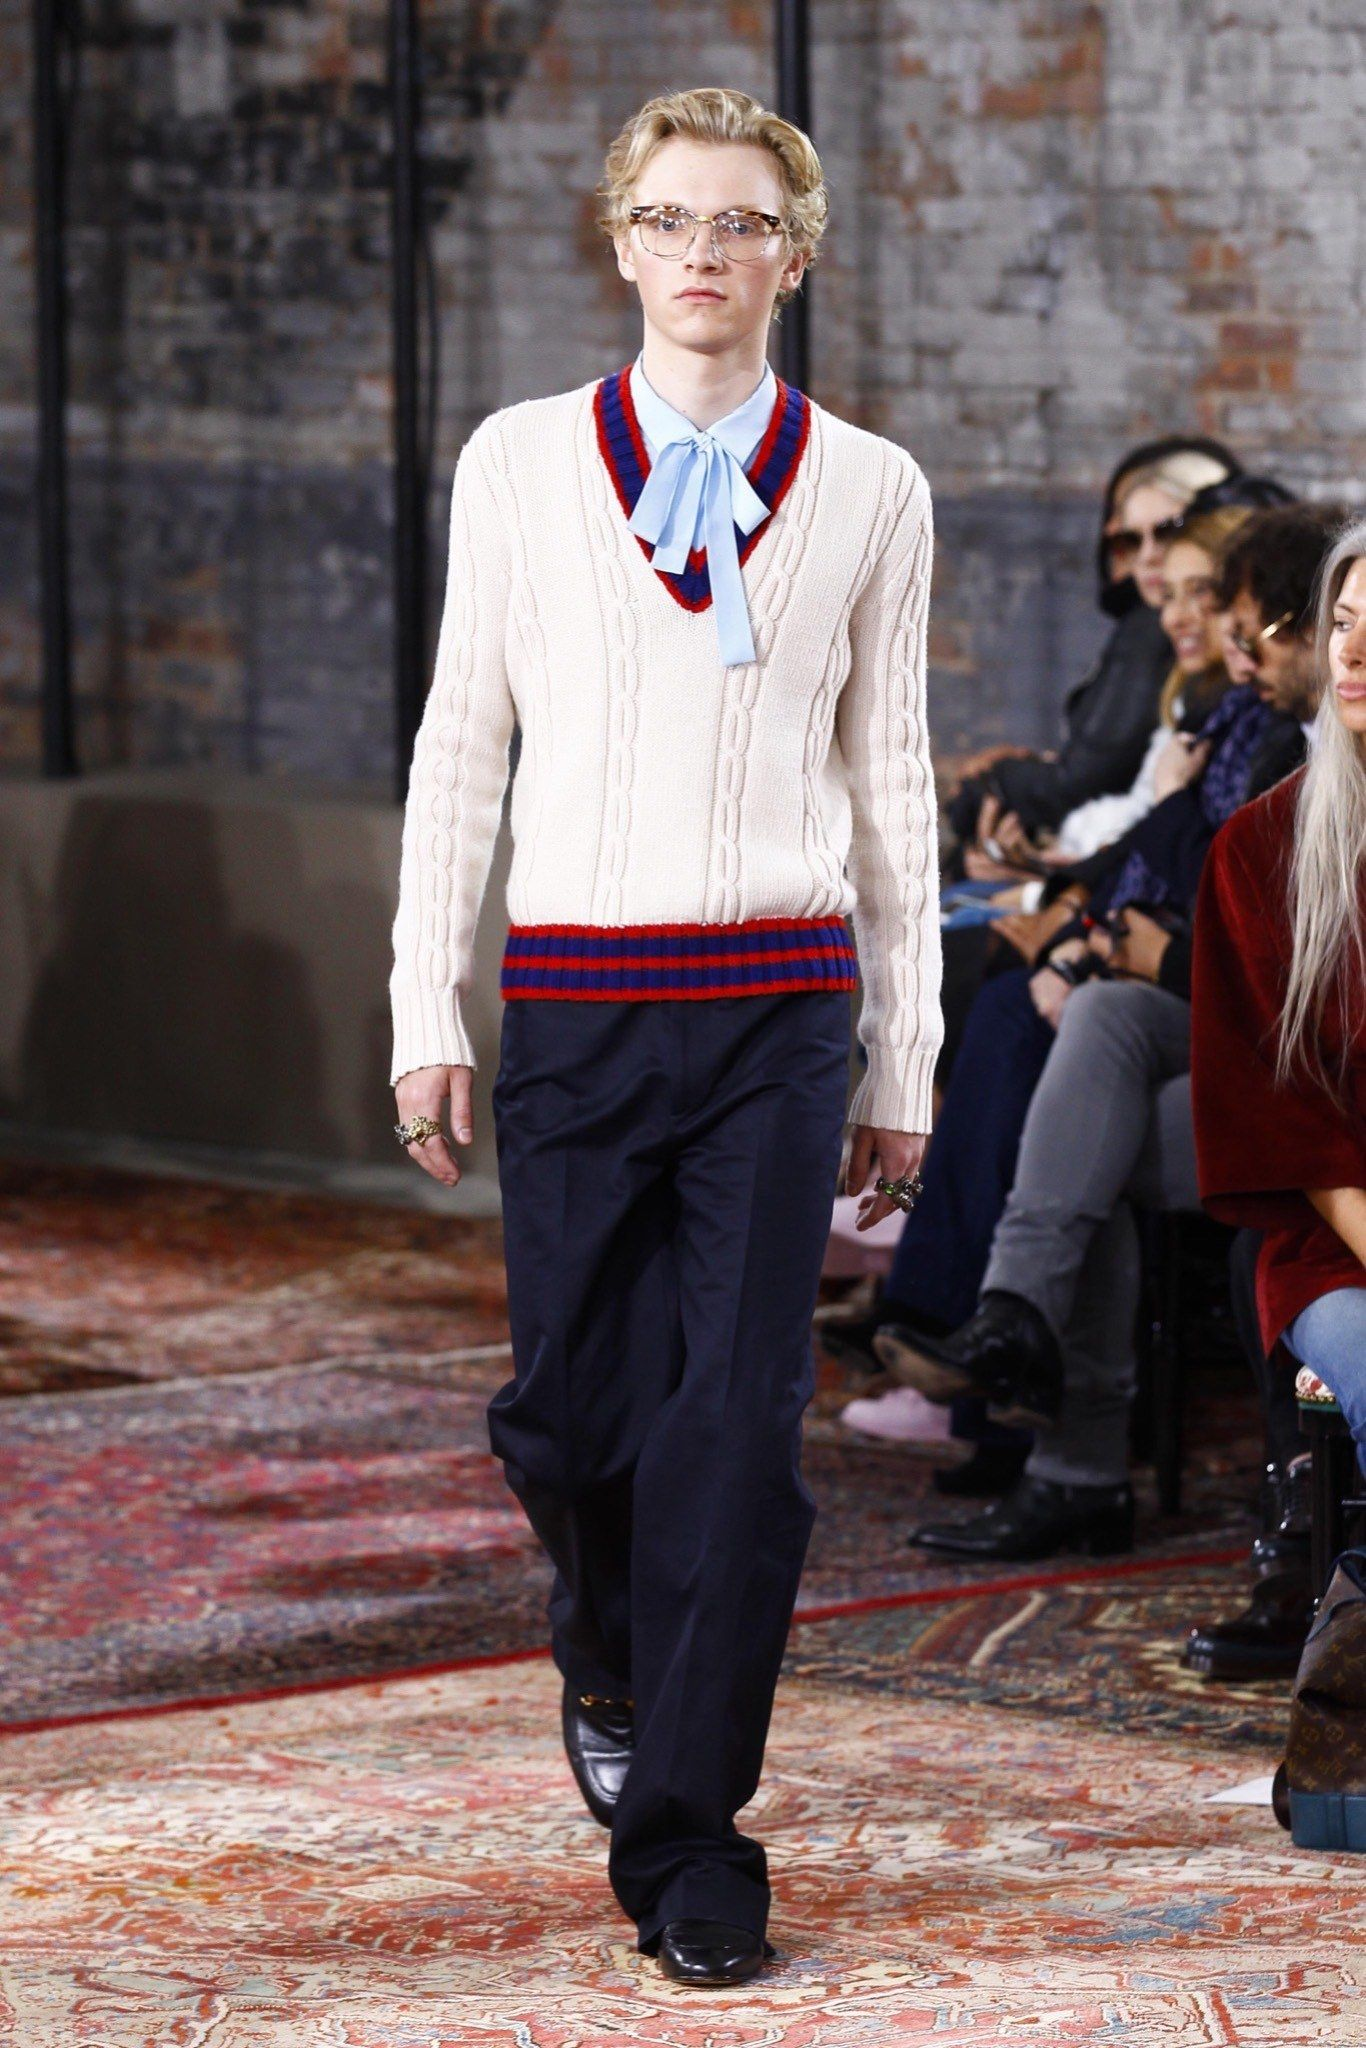 Gucci Resort 2016 Collection Photos | MENSWEAR | FASHION | GQ | ANDROGYN | SS16 | SHIRT | 70's | RETRO |